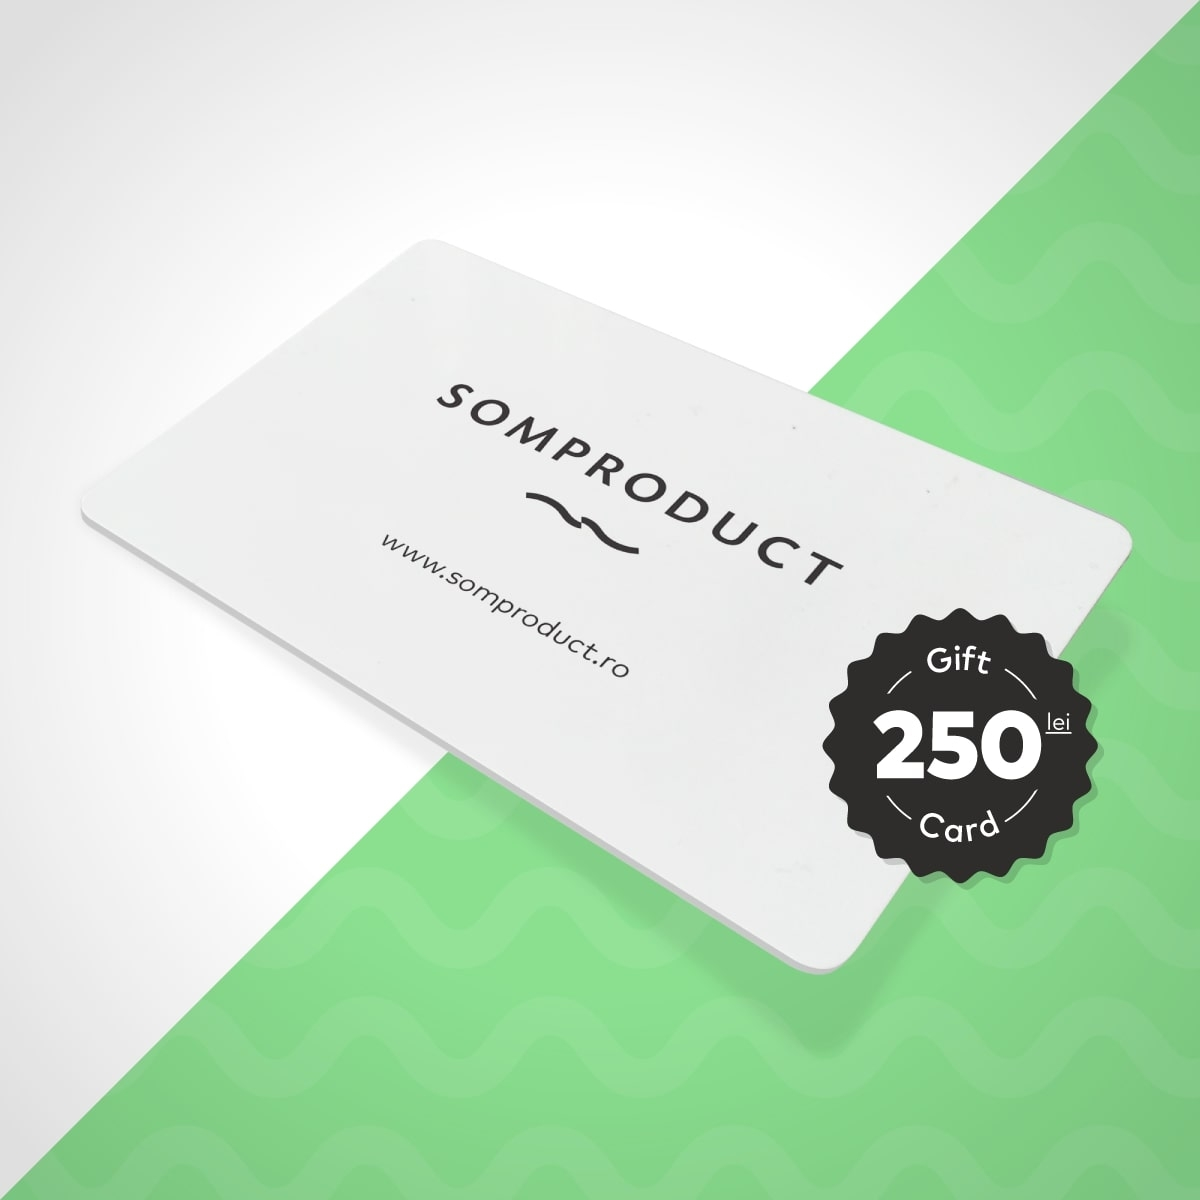 Gift Card SomProduct 250 Lei din categoria General